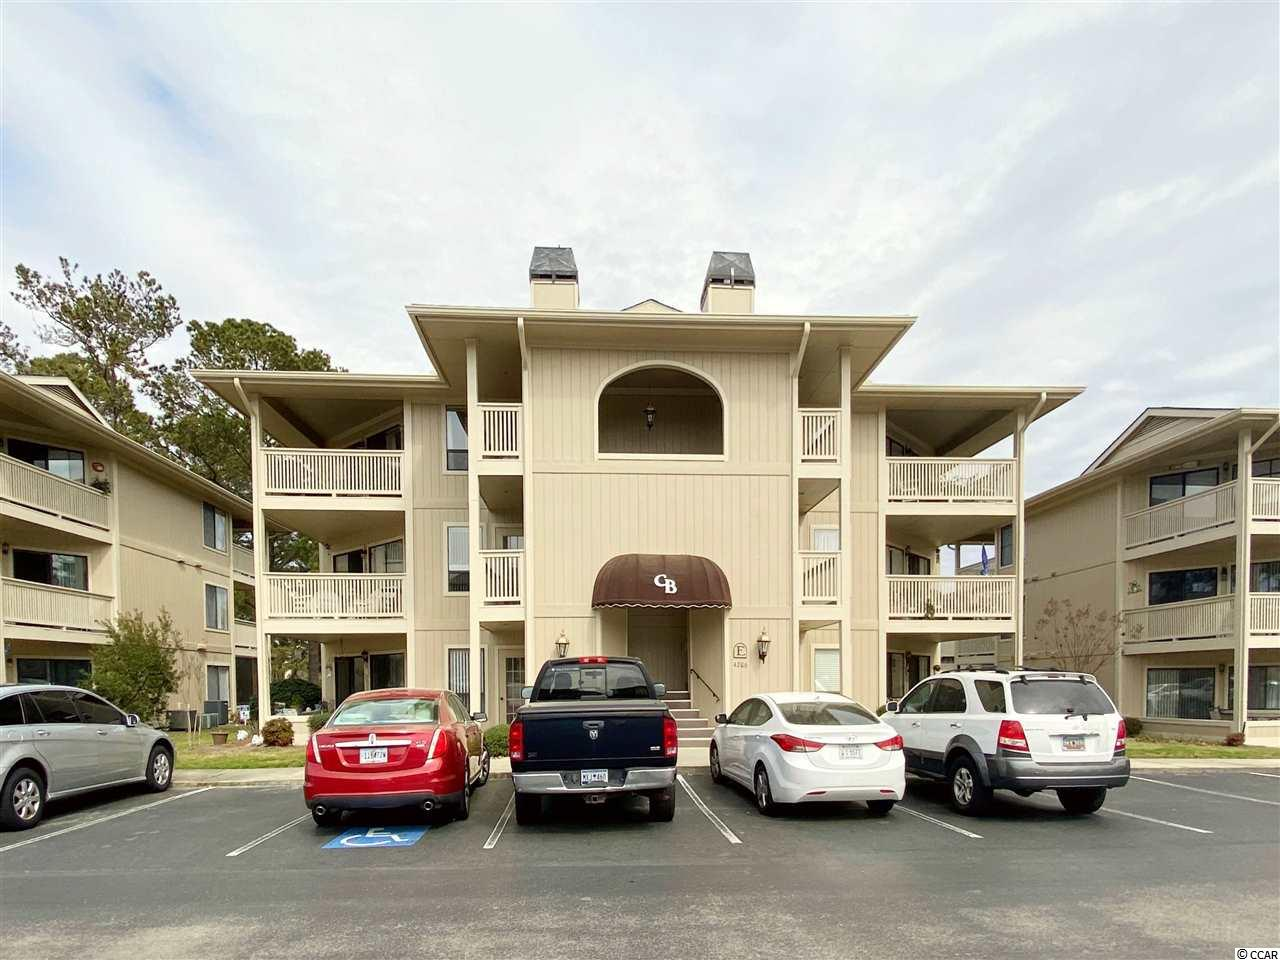 Wow! Check out this awesome 1 bedroom 1 bath condo in the heart of Little River. Beautiful tile flooring found throughout makes this cleaning this unit a breeze. This prime location puts you minutes from both SC and NC beaches. Perfect for rental potential or a 2nd home. This property will not last long. Call today to schedule your private showing.